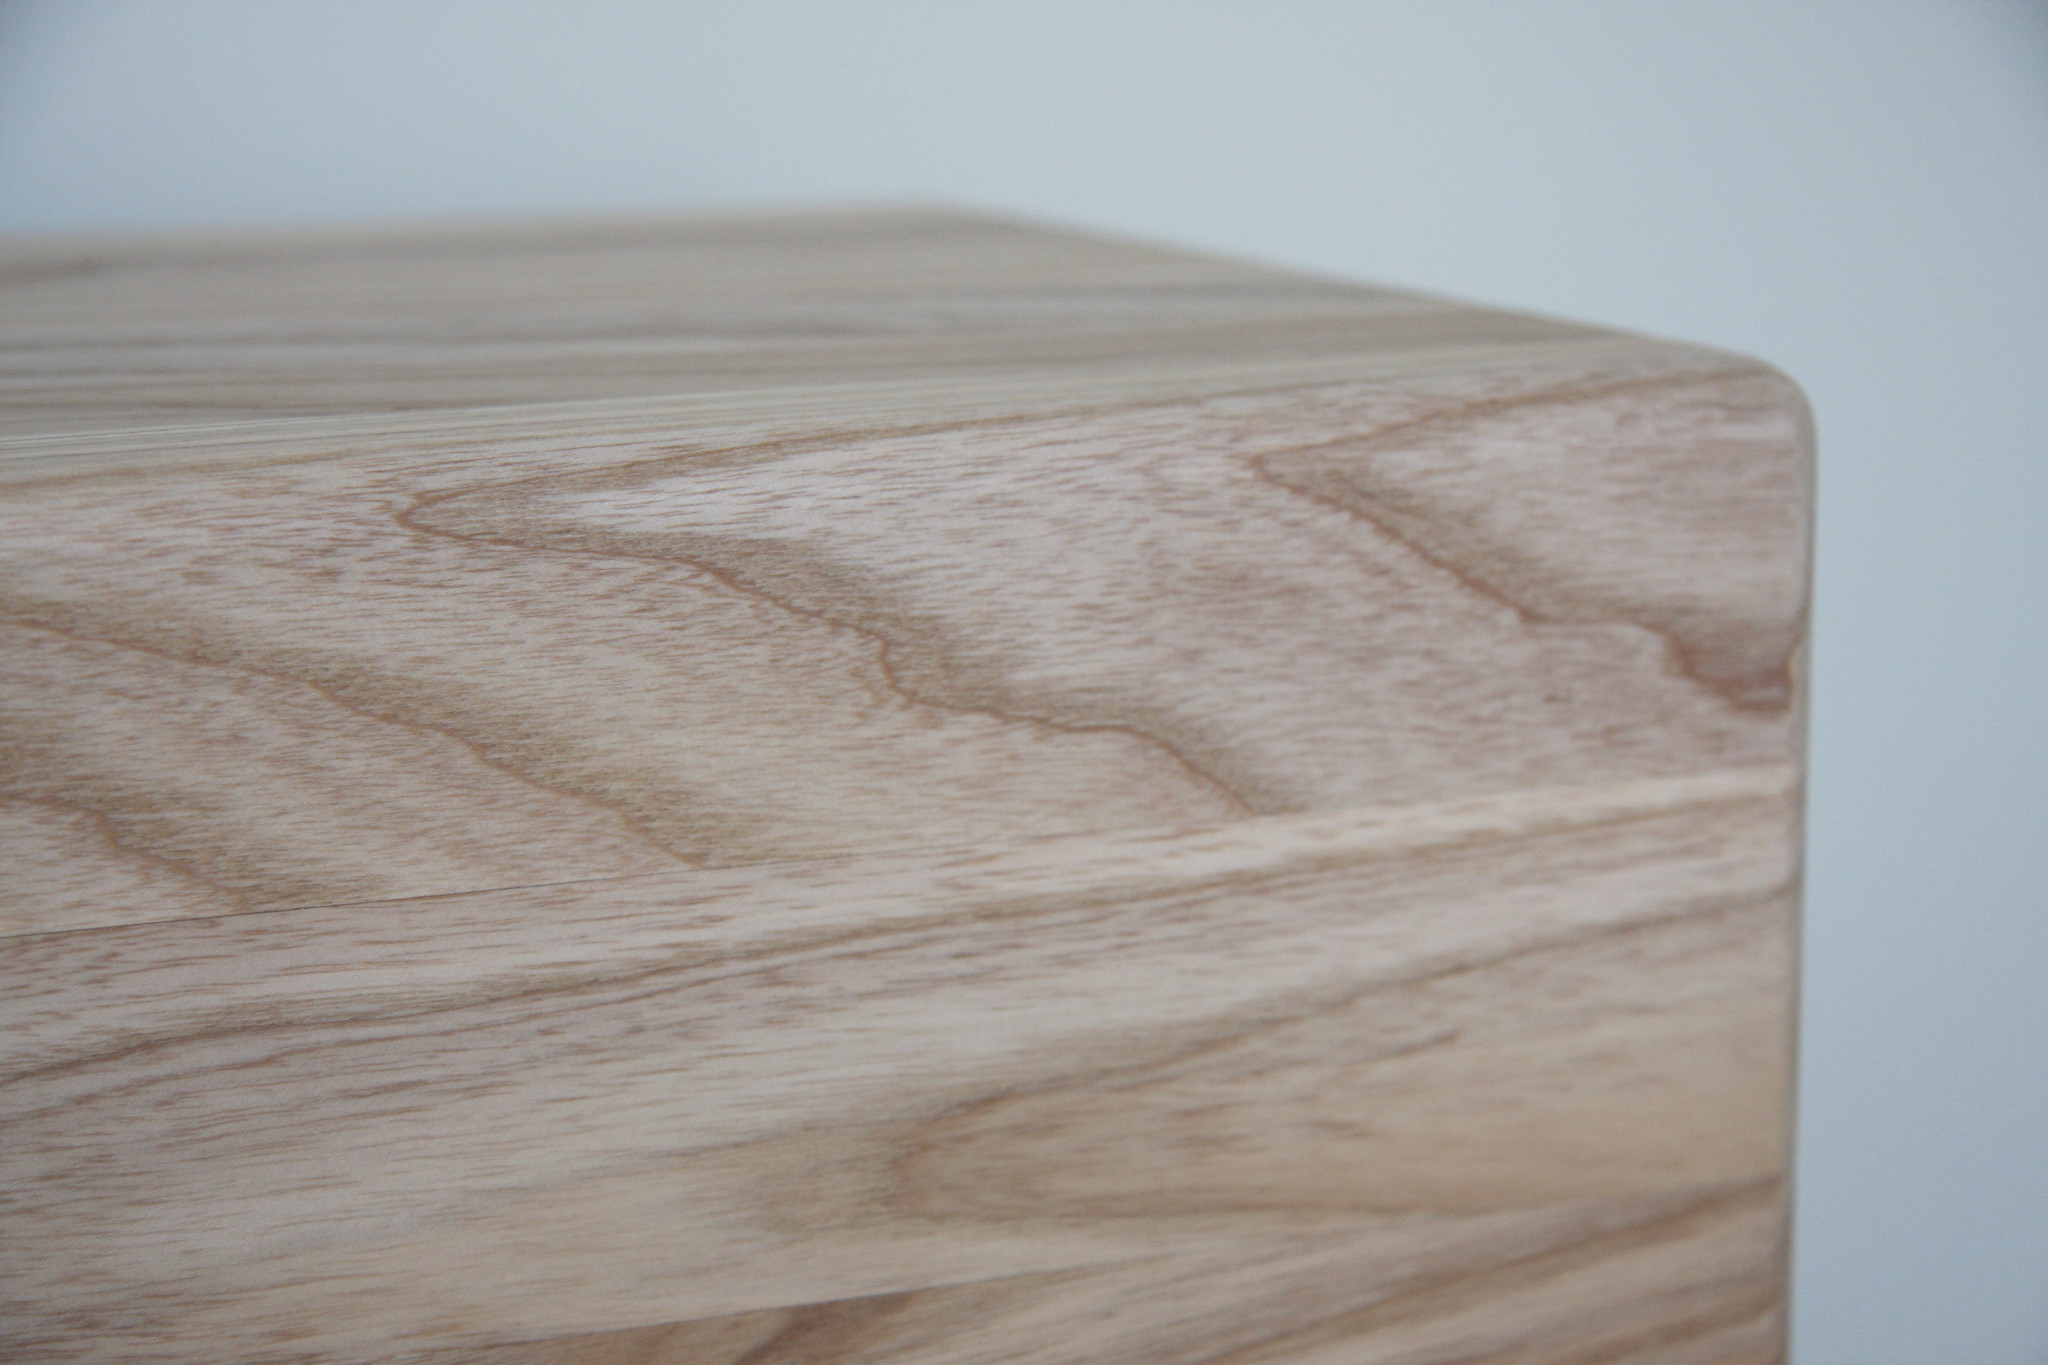 Nonjetable-Solid-Ash-Headboard-Made-to-Measure-02